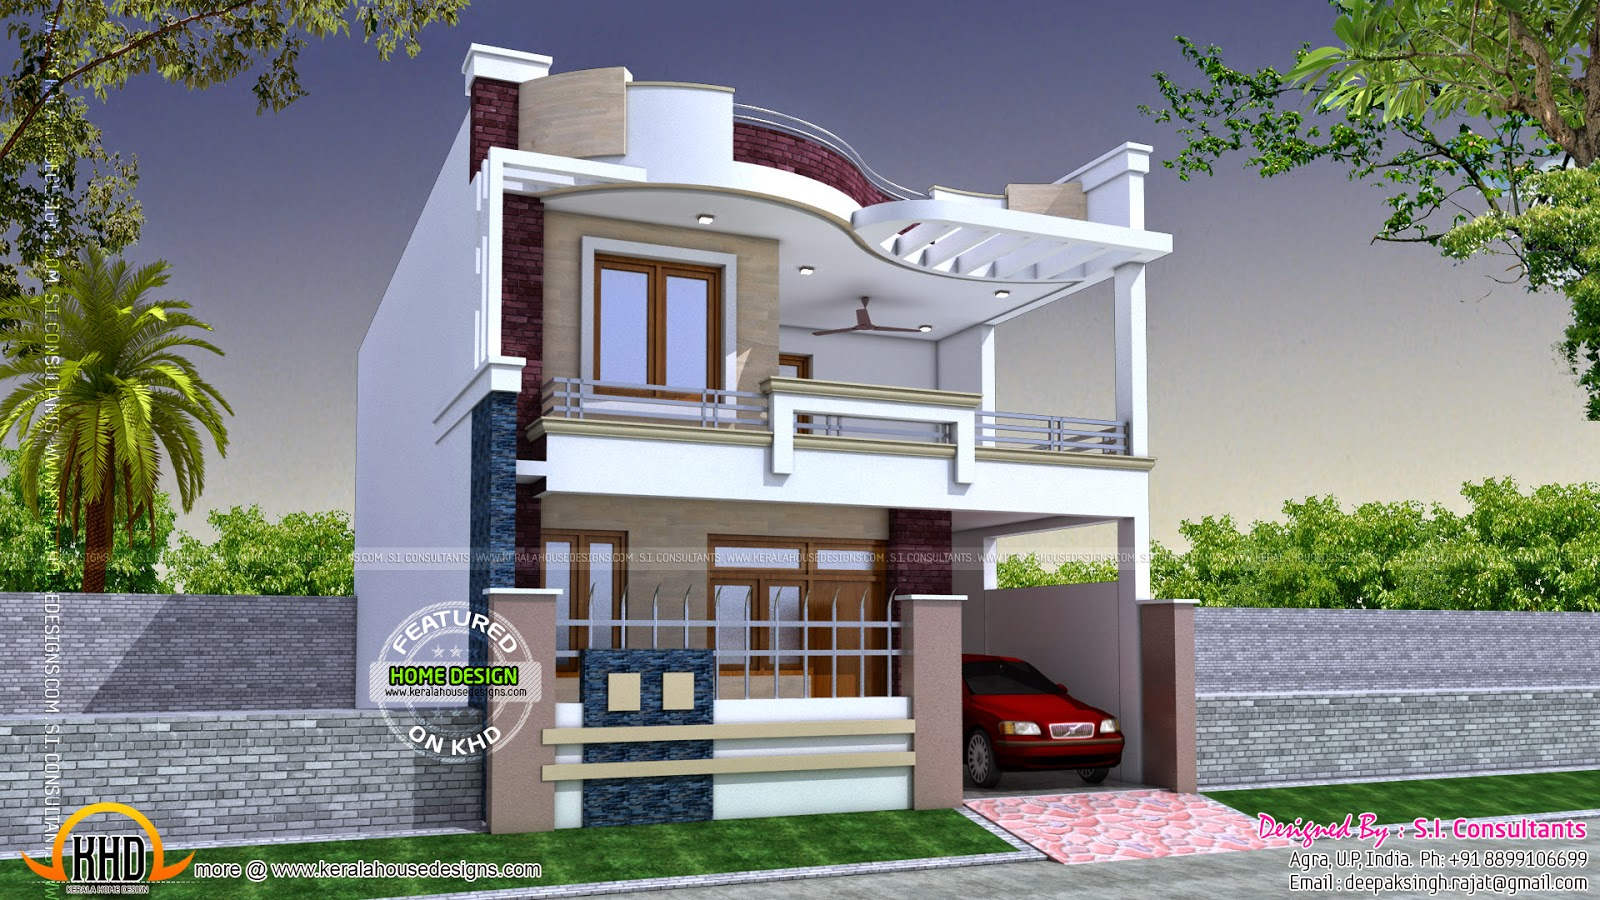 Modern indian home design kerala home design and floor plans Best home designs of 2014